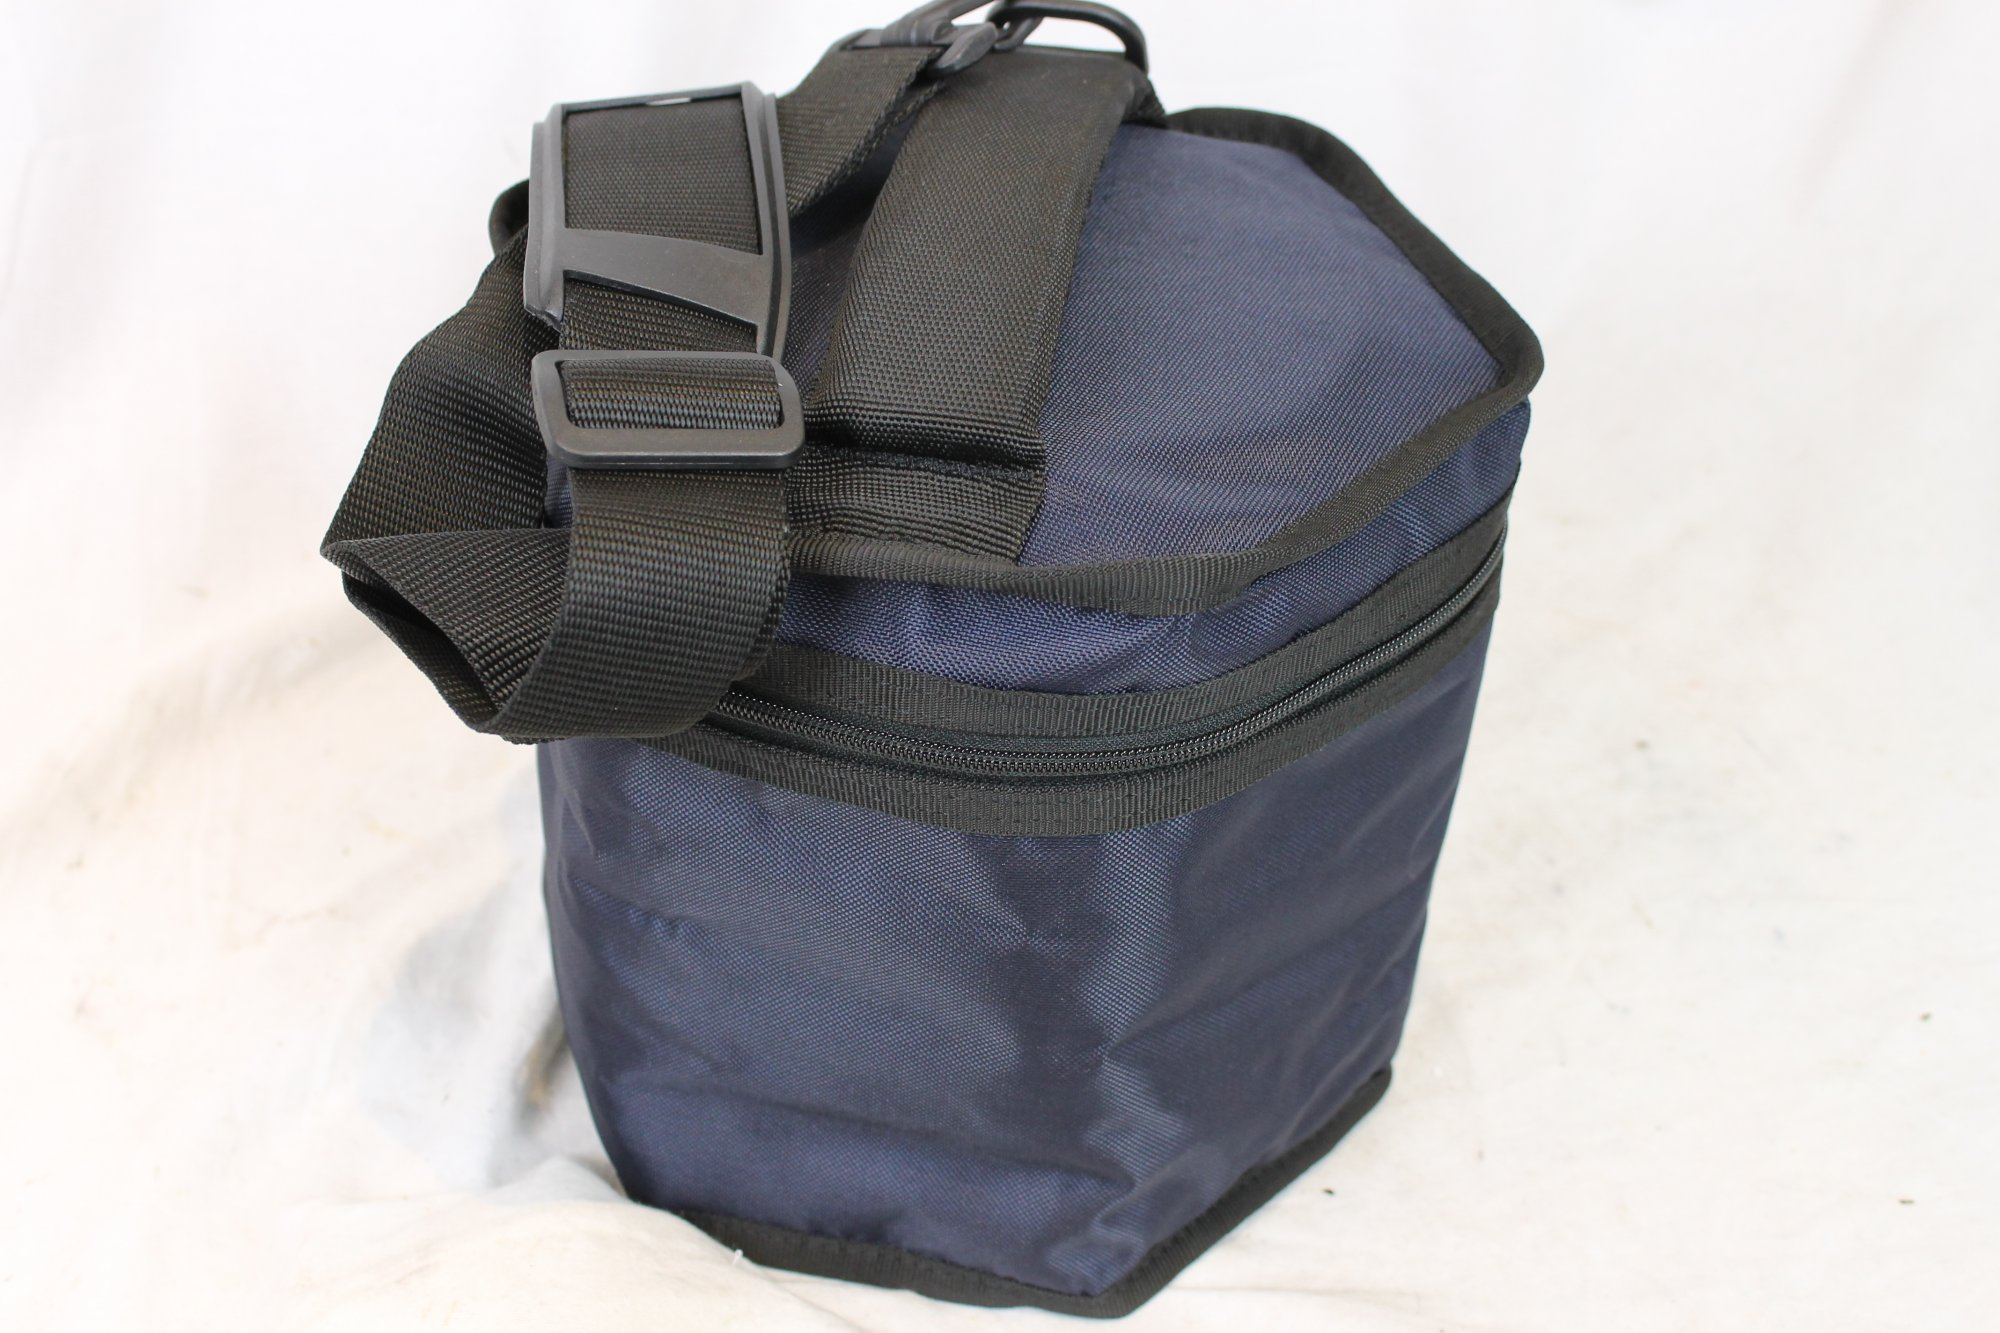 NEW Blue Fuselli Deluxe Padded Gig Bag for Concertina 8 Height x 7.5 Diameter